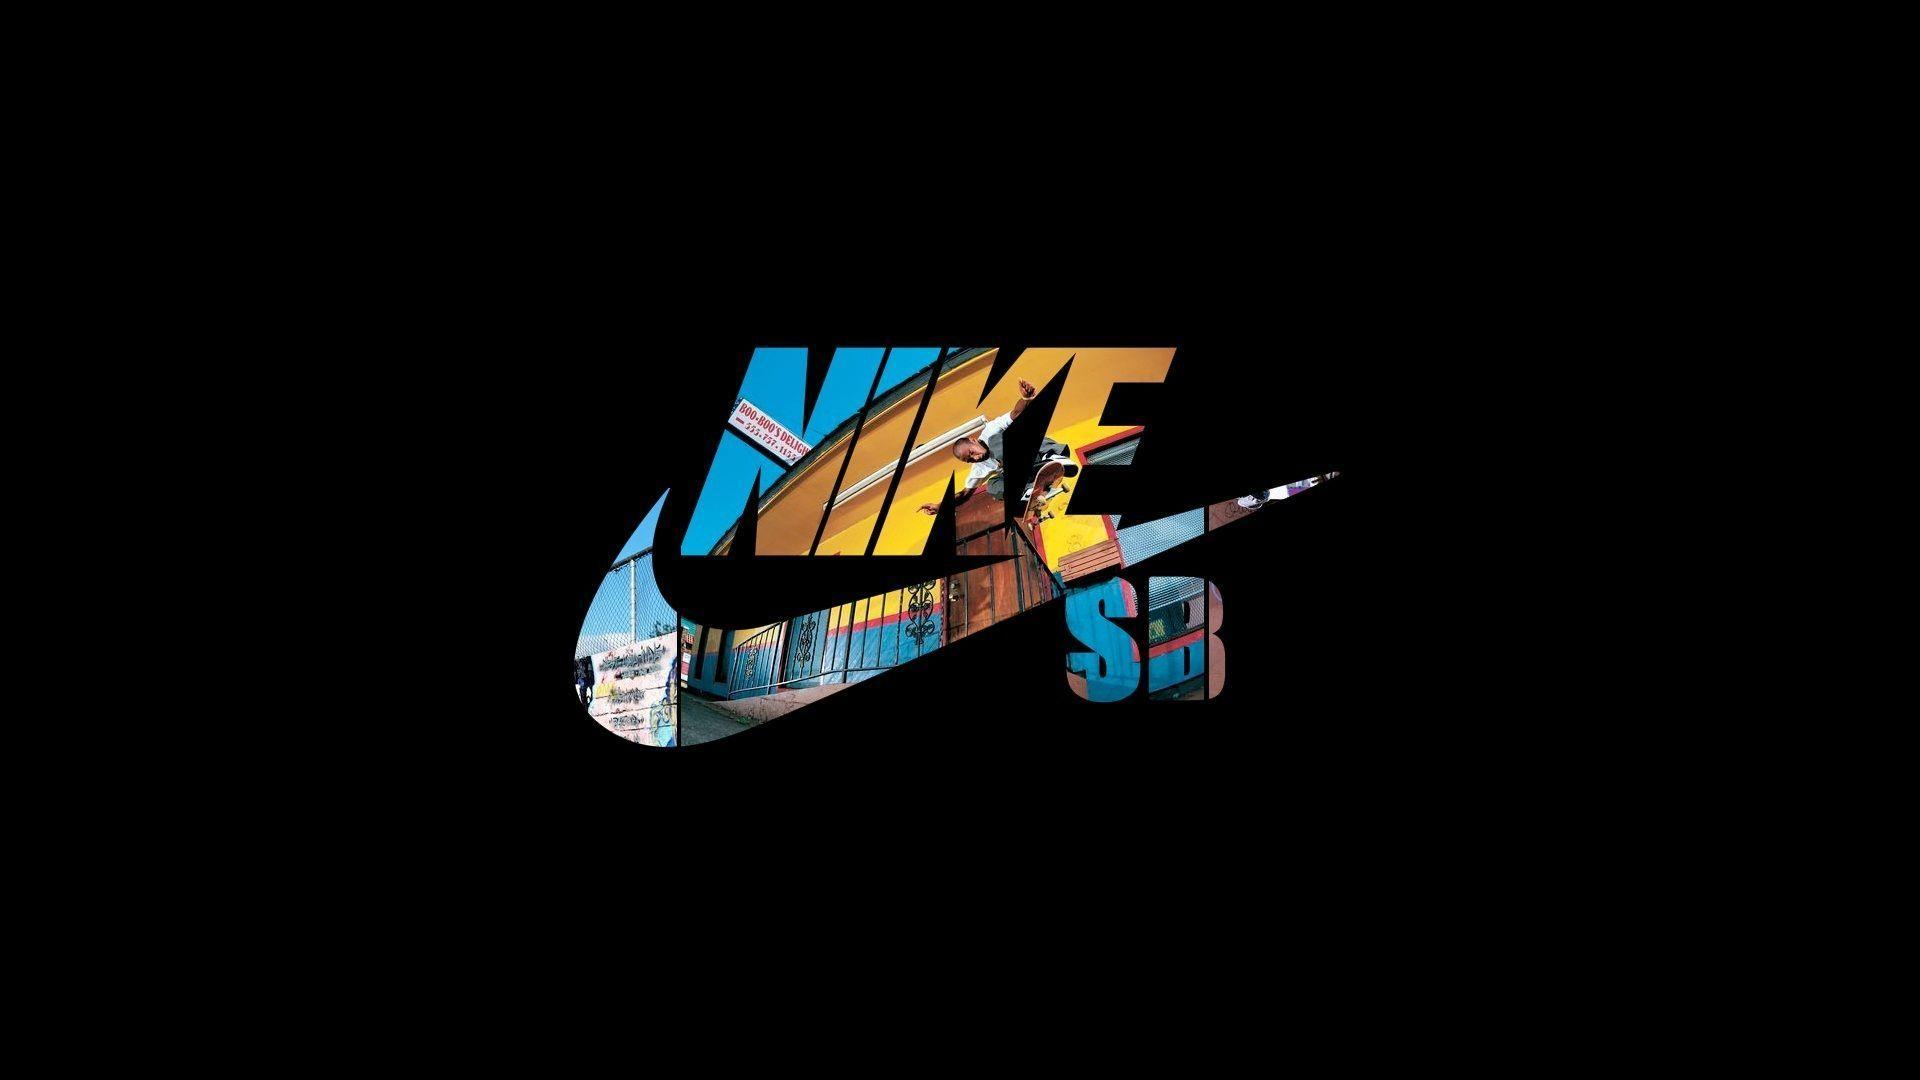 Nike Just Do It HD Wallpapers for Desktop